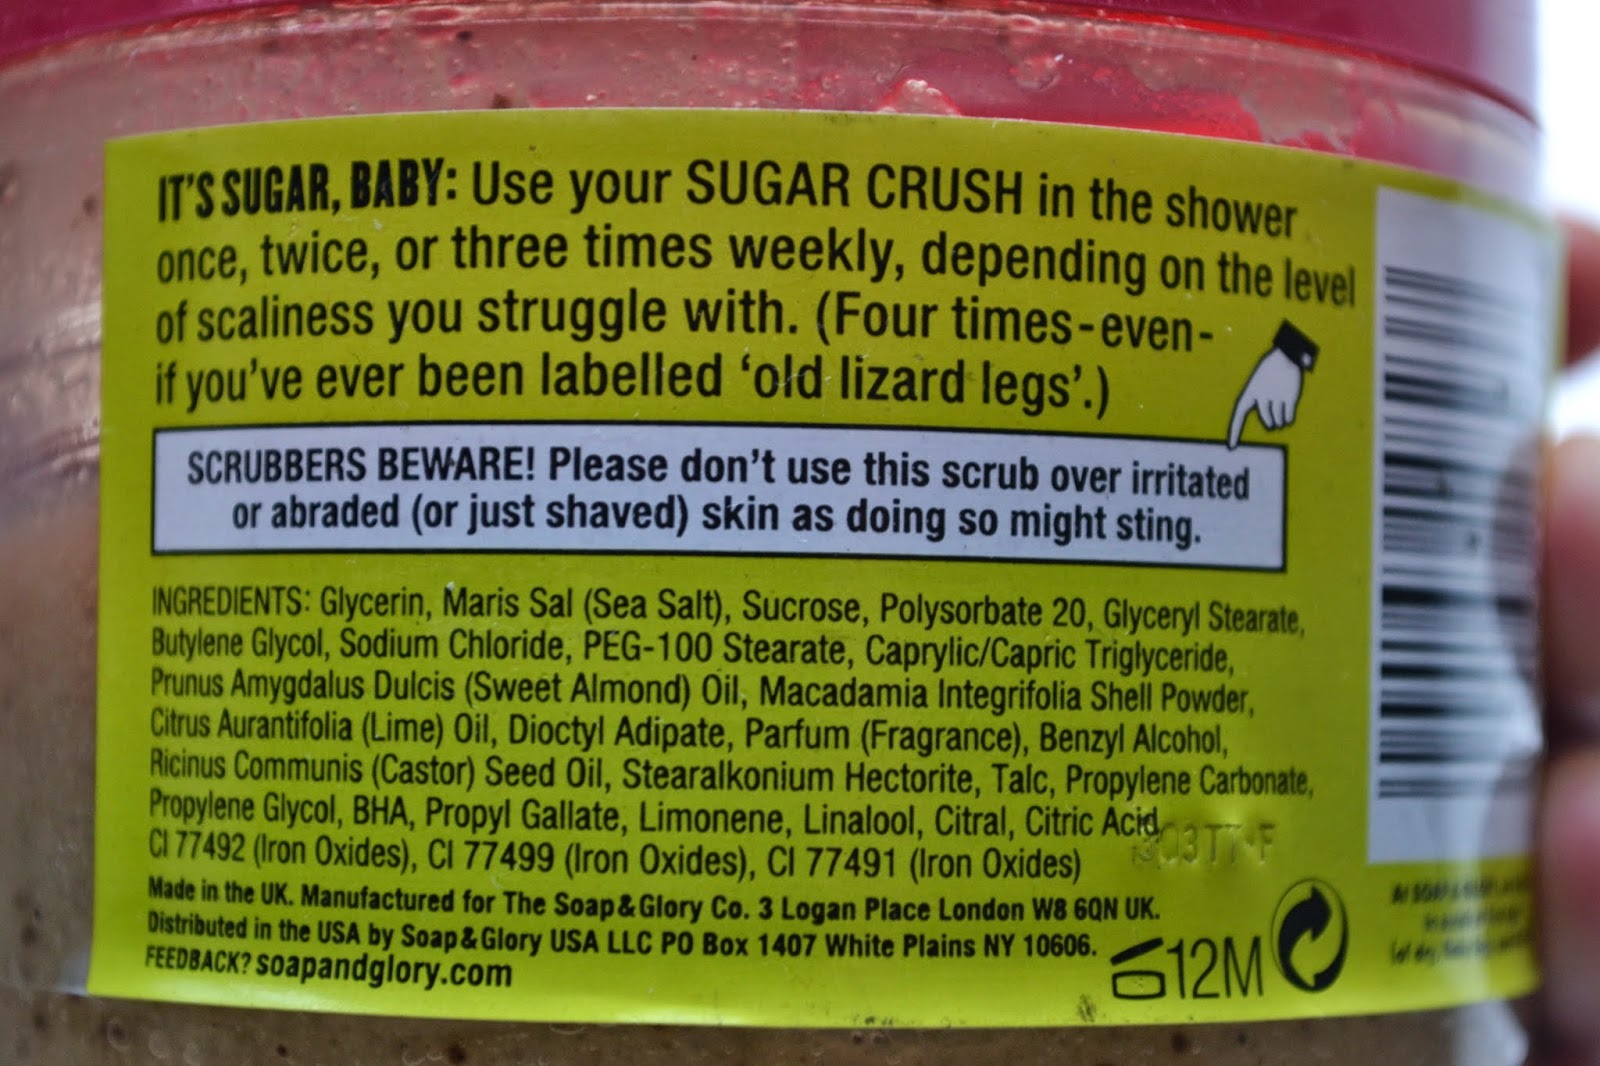 Sugar Crush Body Scrub by Soap & Glory